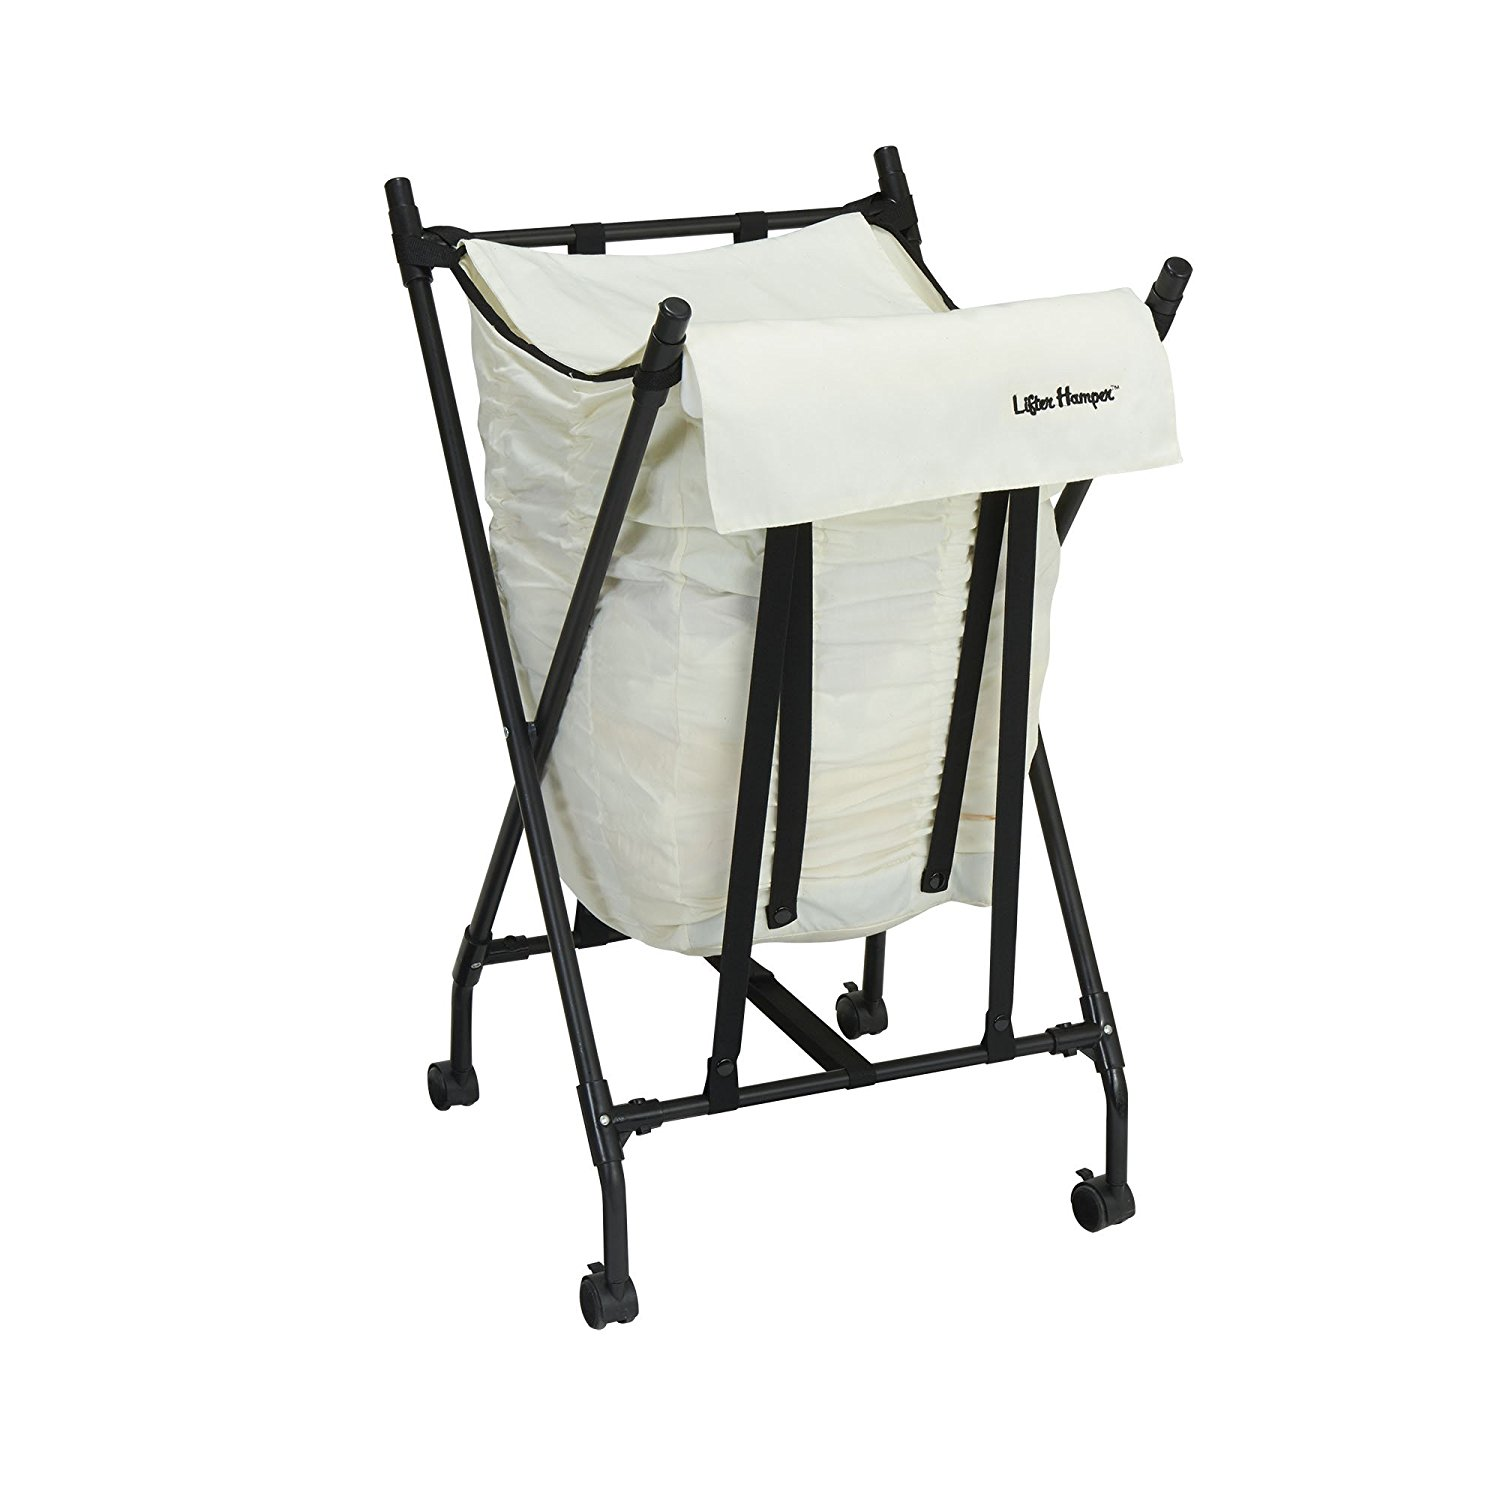 laundry basket bag hamper slim small spaces lifter rolling